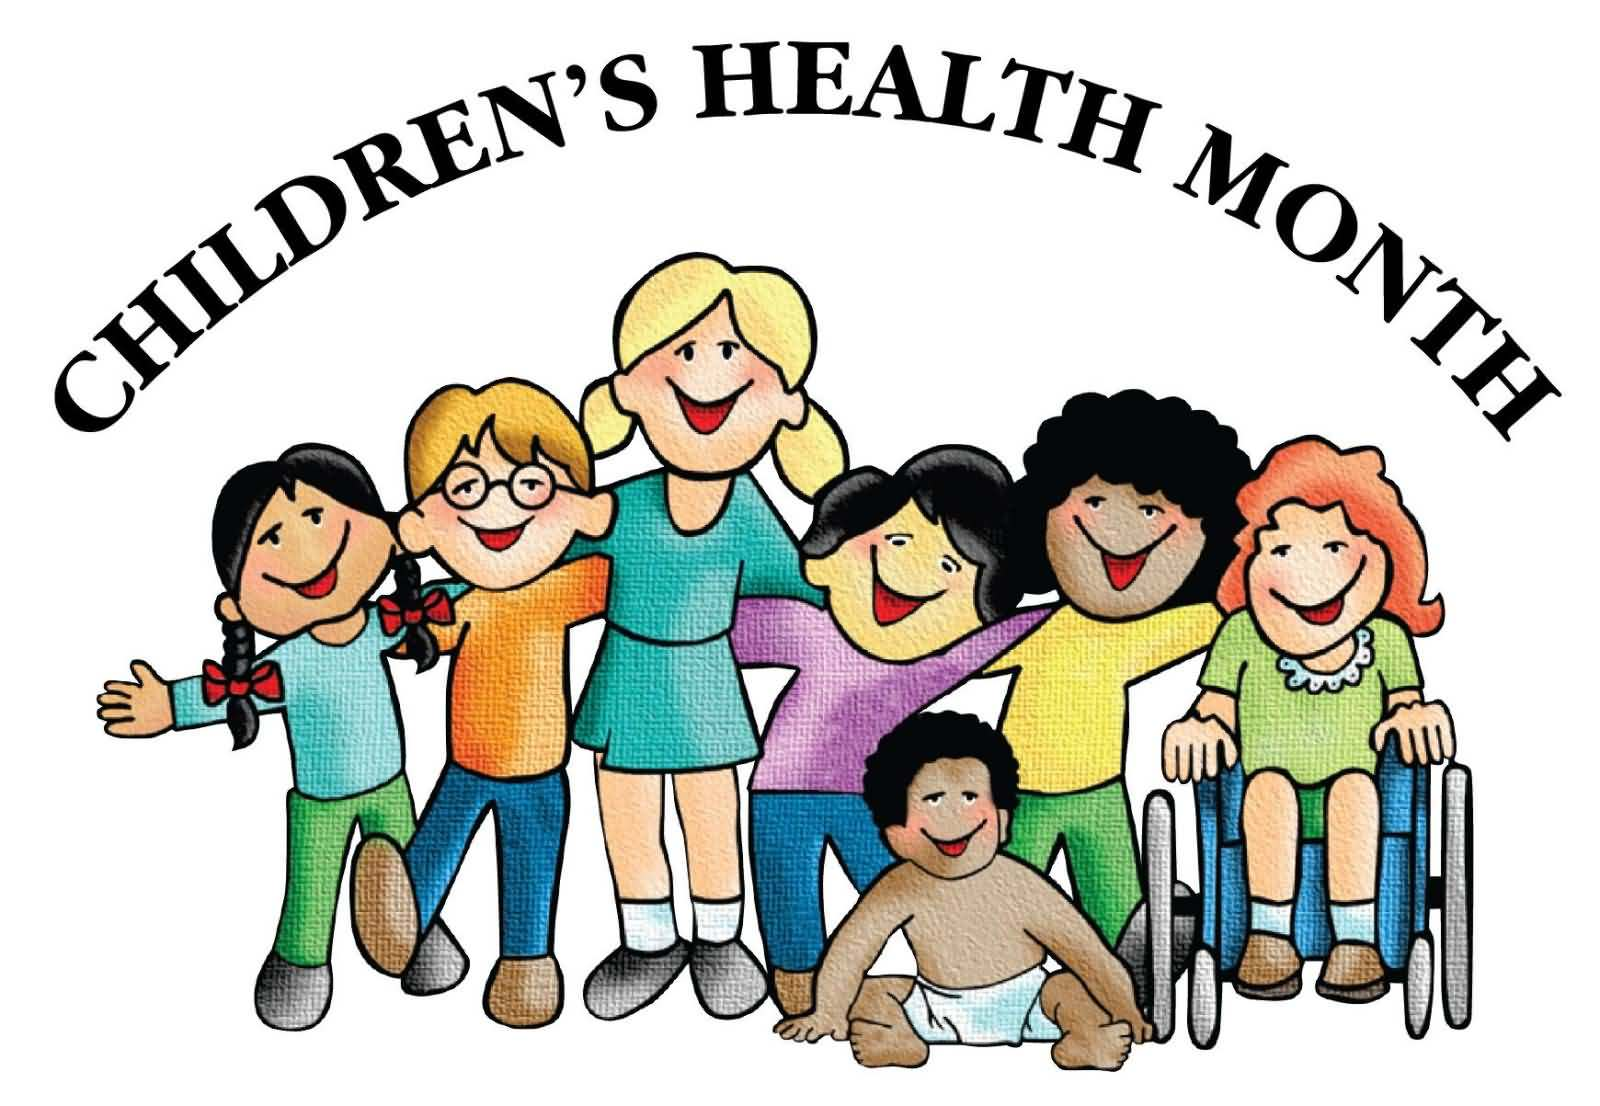 15 Best Child Health Day 2017 Pictures And Images.